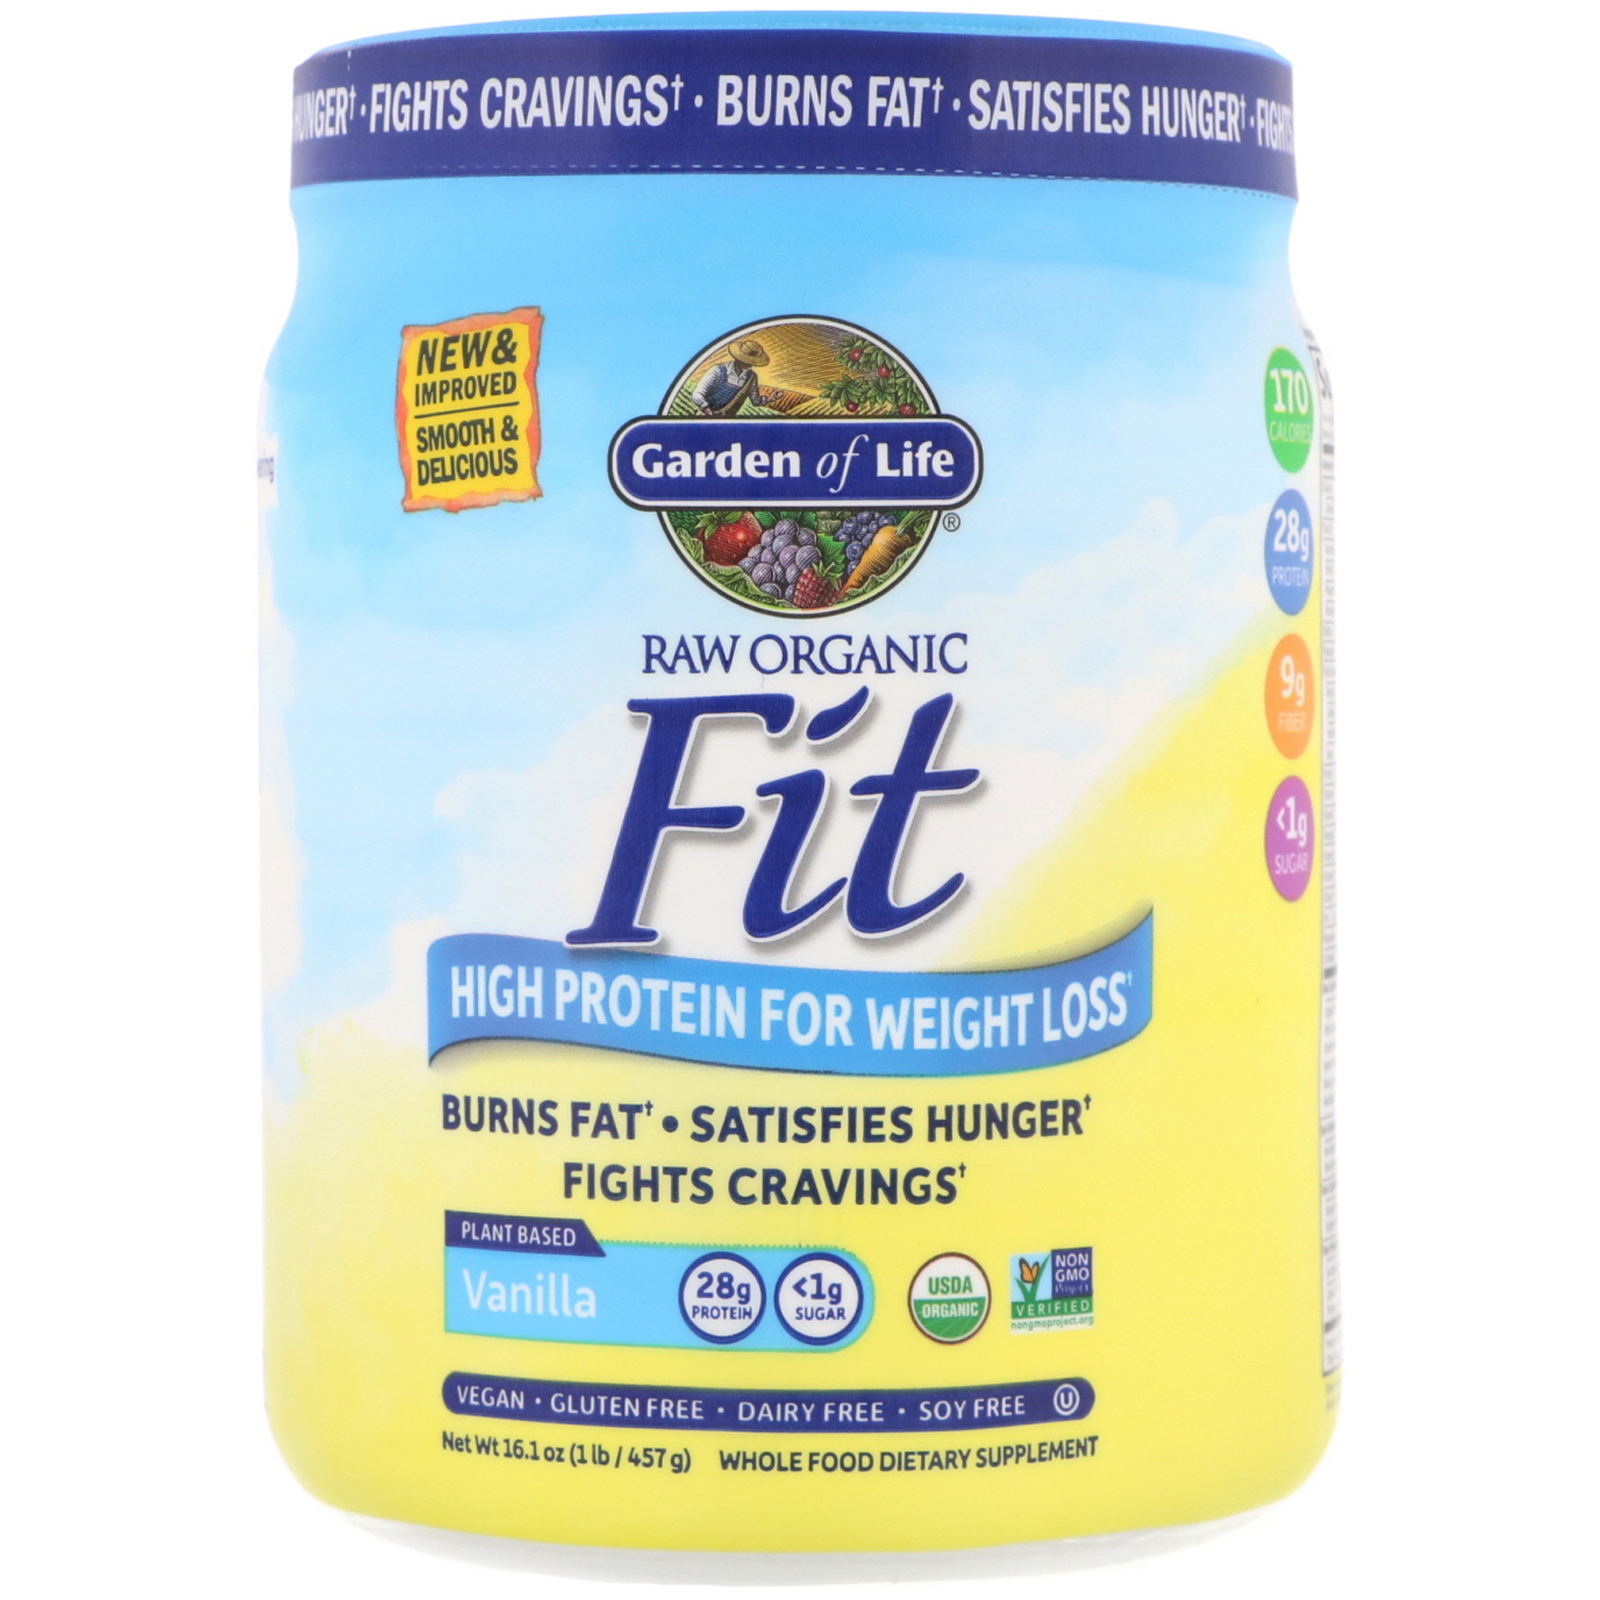 Garden Of Life Raw Organic Fit High Protein For Weight Loss Vanilla 16 1 Oz 457 G Iherb